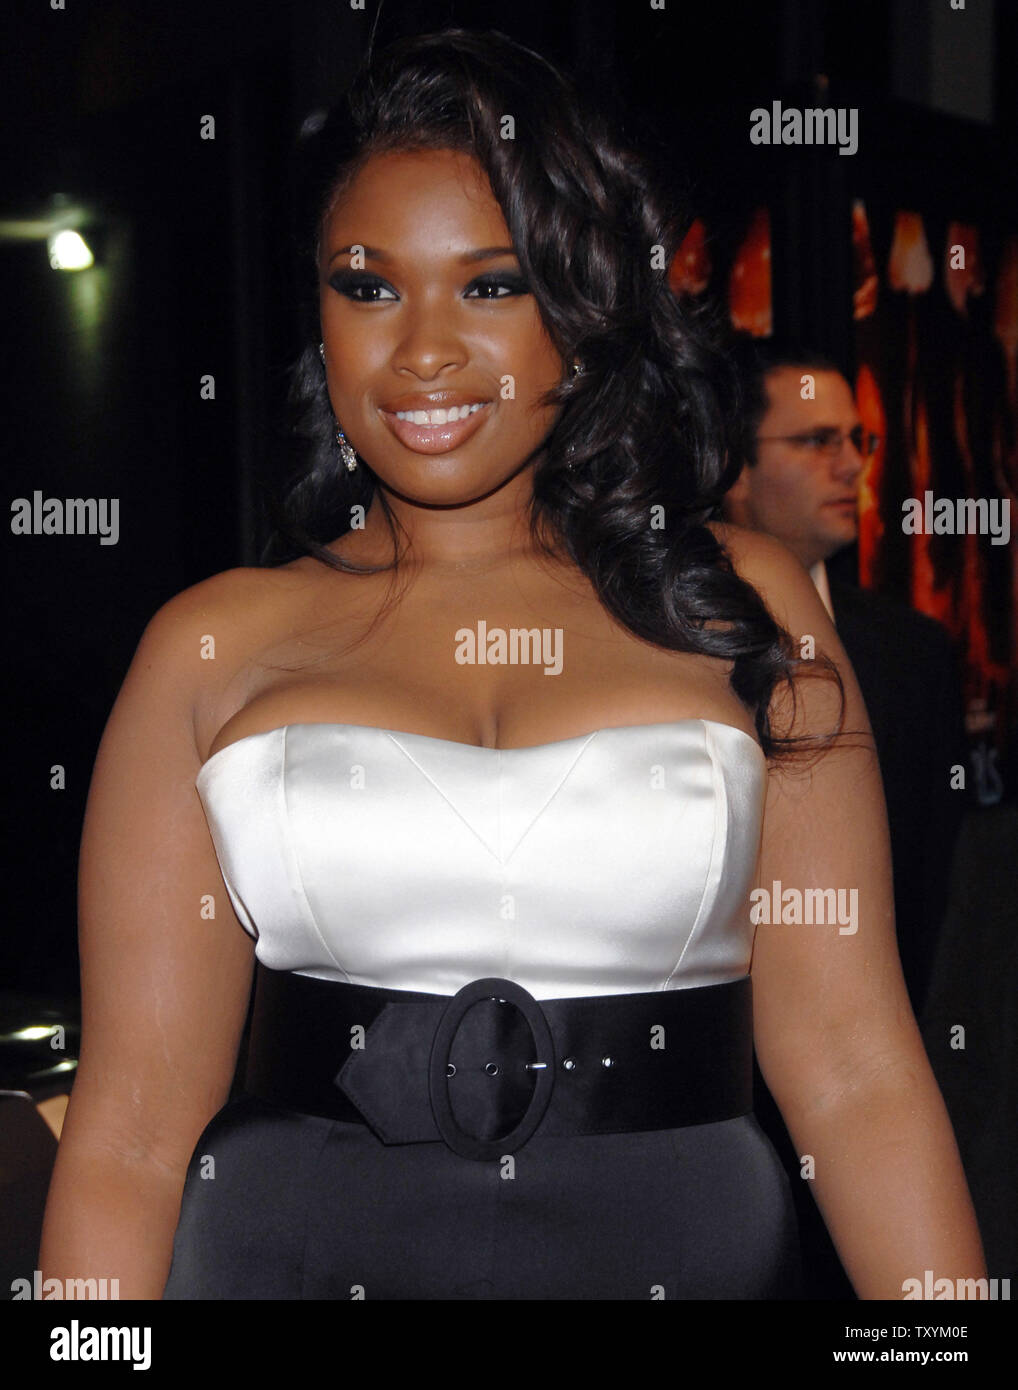 Jennifer Hudson, a cast member in the motion picture musical